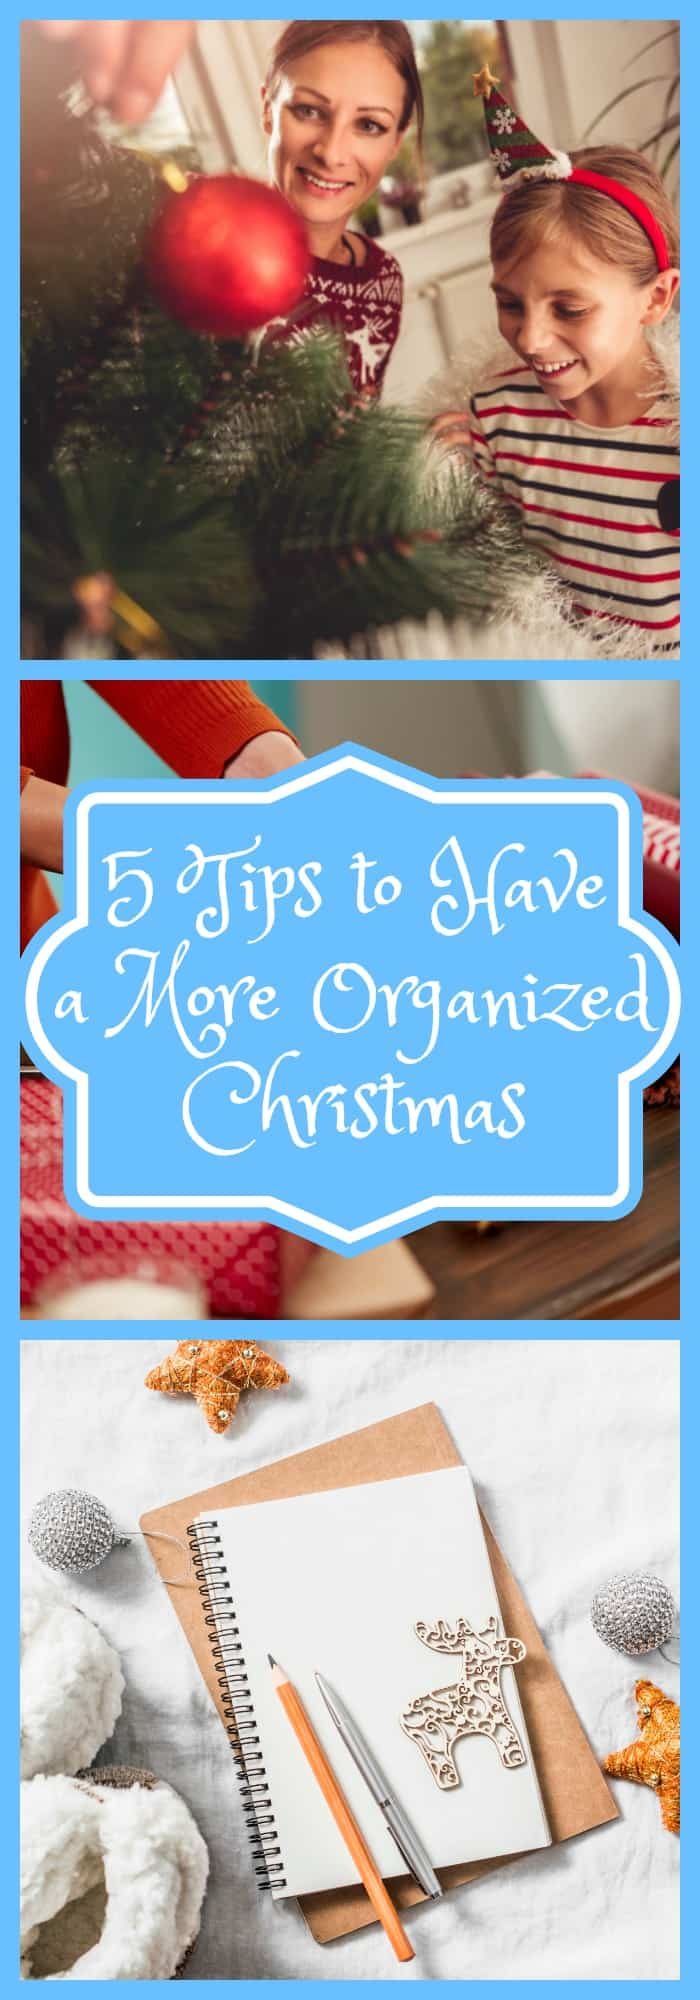 Tips to Have a More Organized Christmas